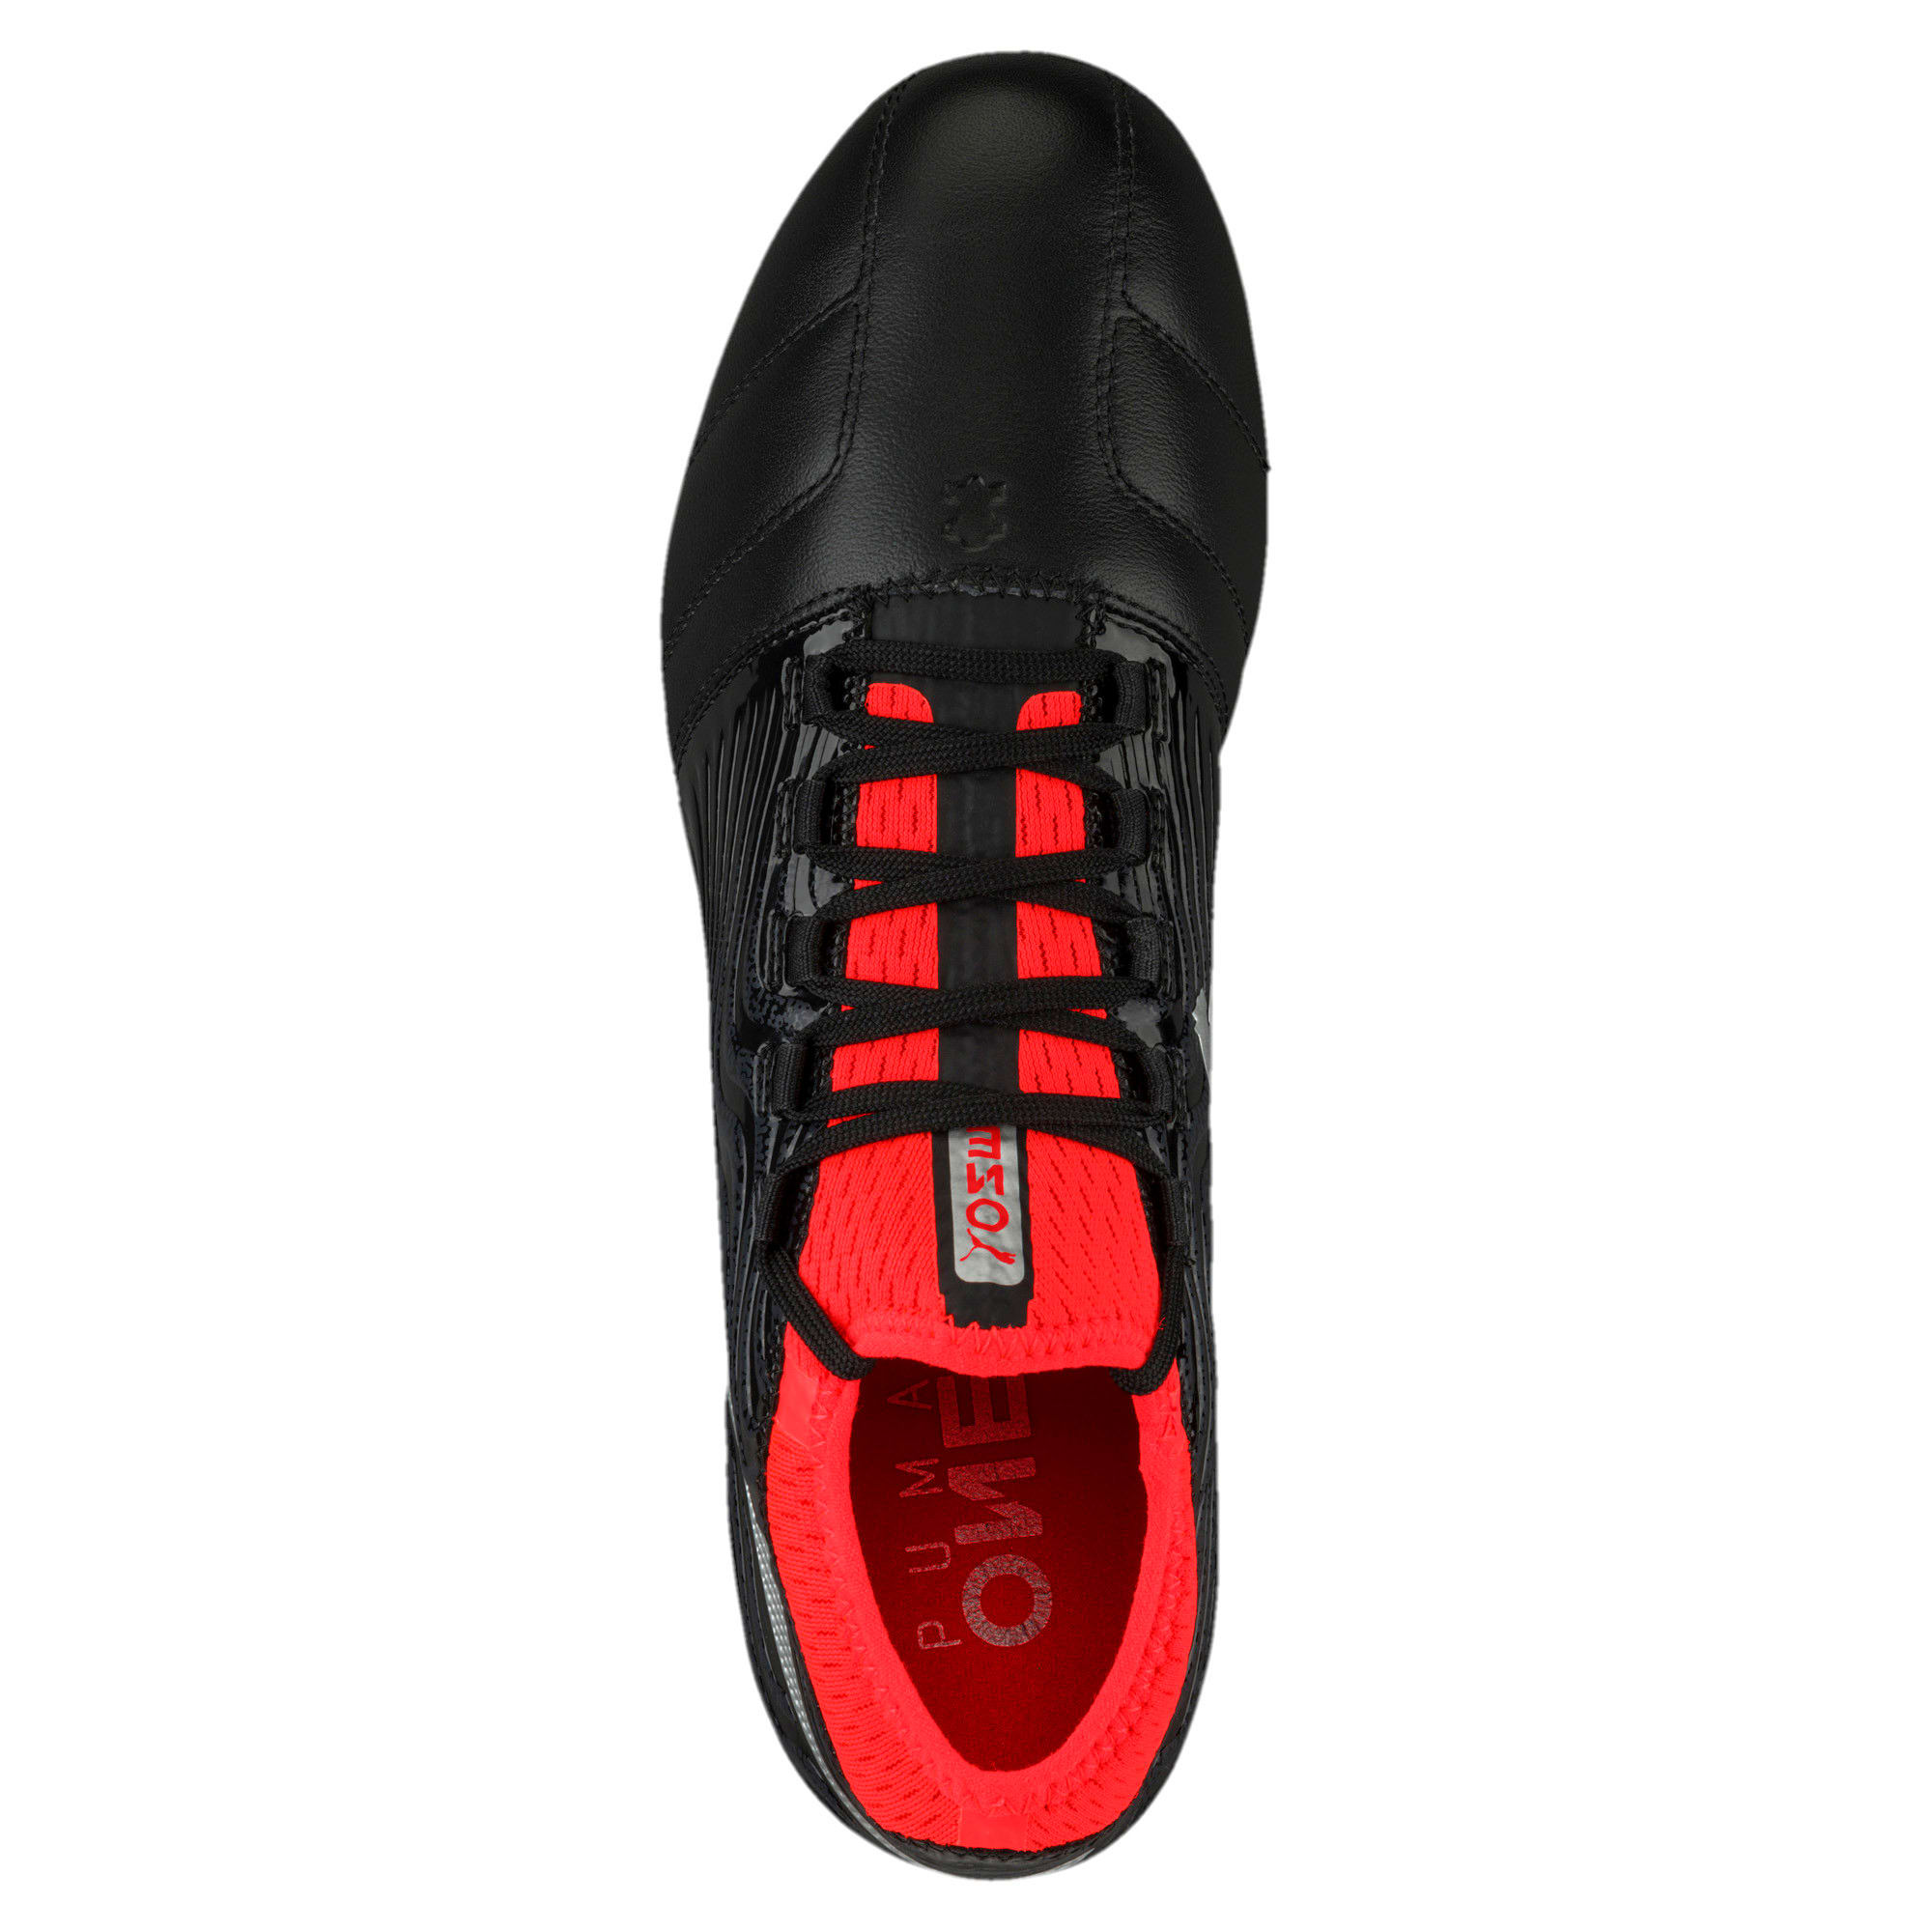 Thumbnail 5 of ONE 18.3 FG Men's Football Boots, Black-Silver-Red, medium-IND